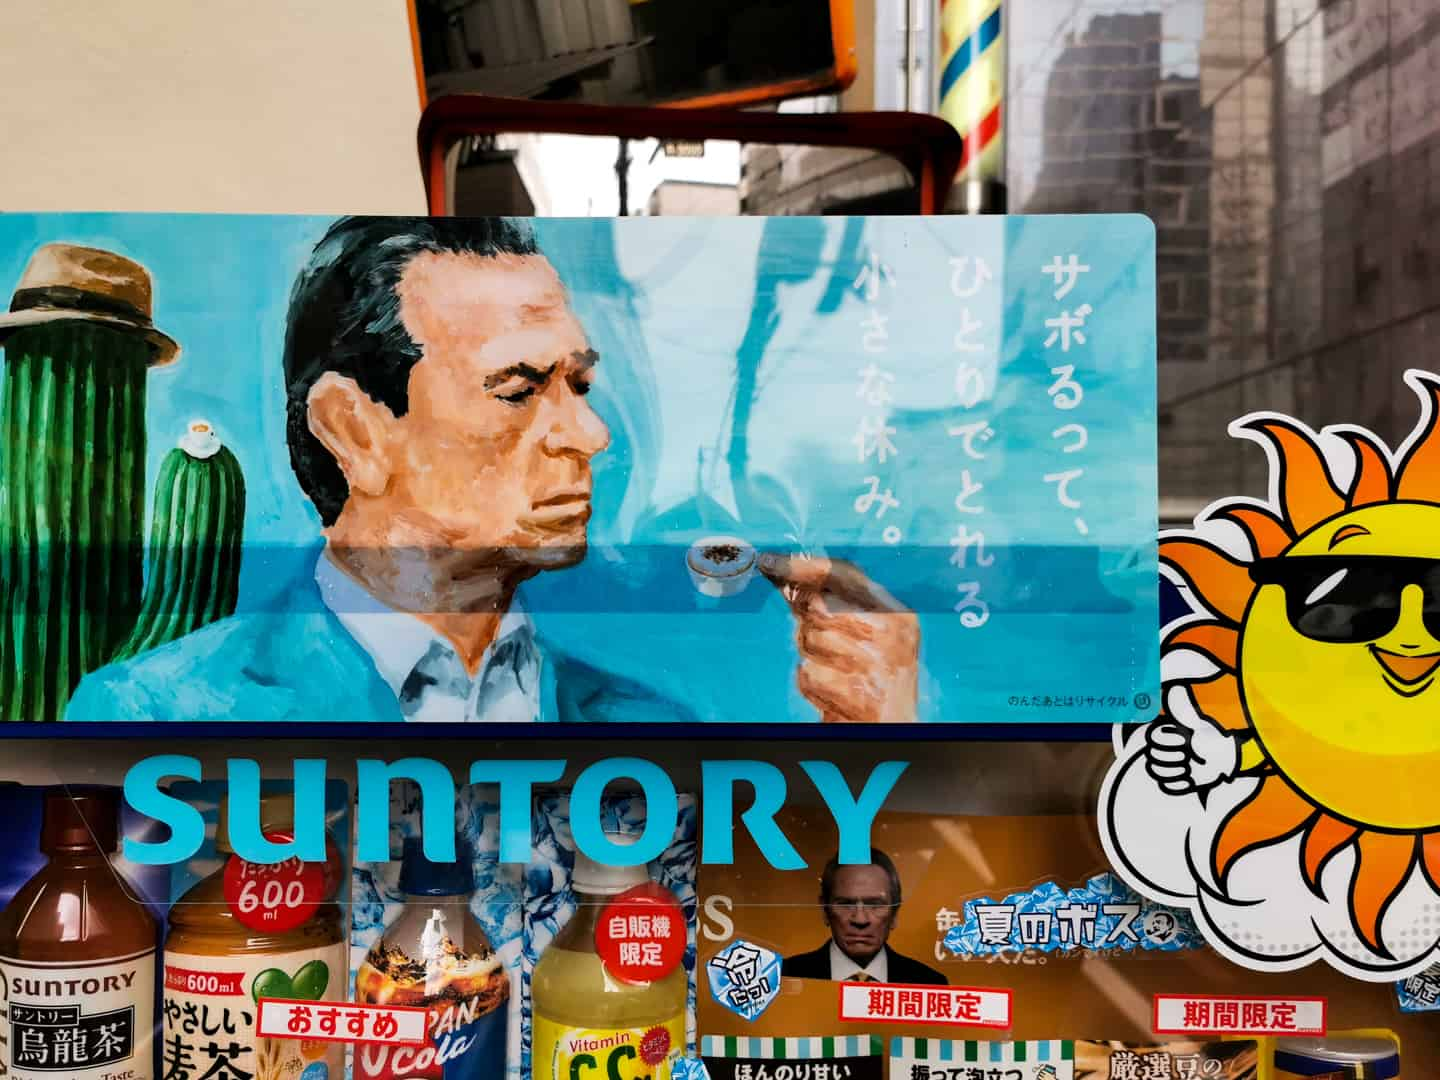 Suntory vending machine